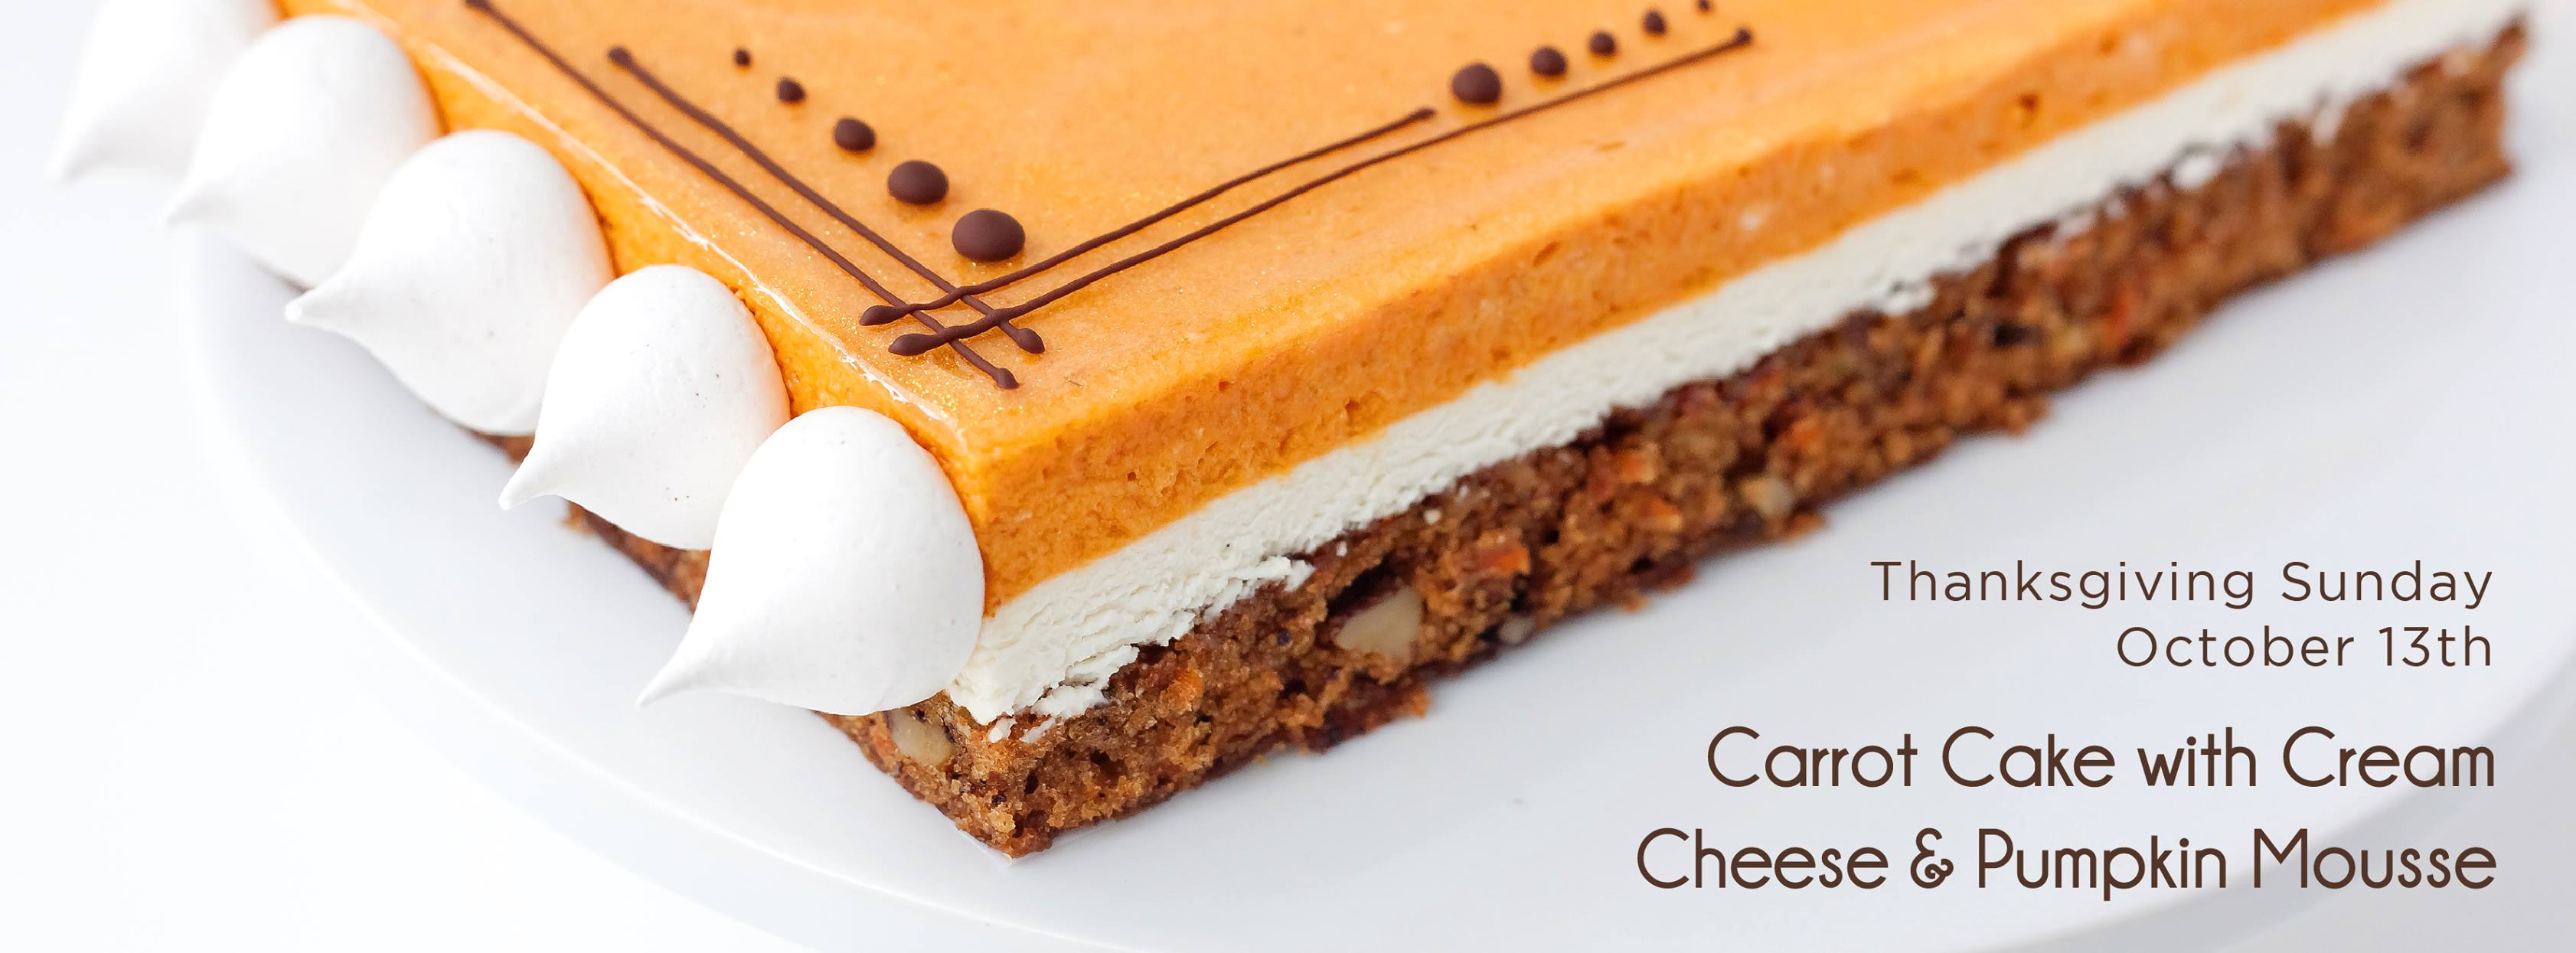 Carrot Cake with Cream Cheese & Pumpkin Mousse